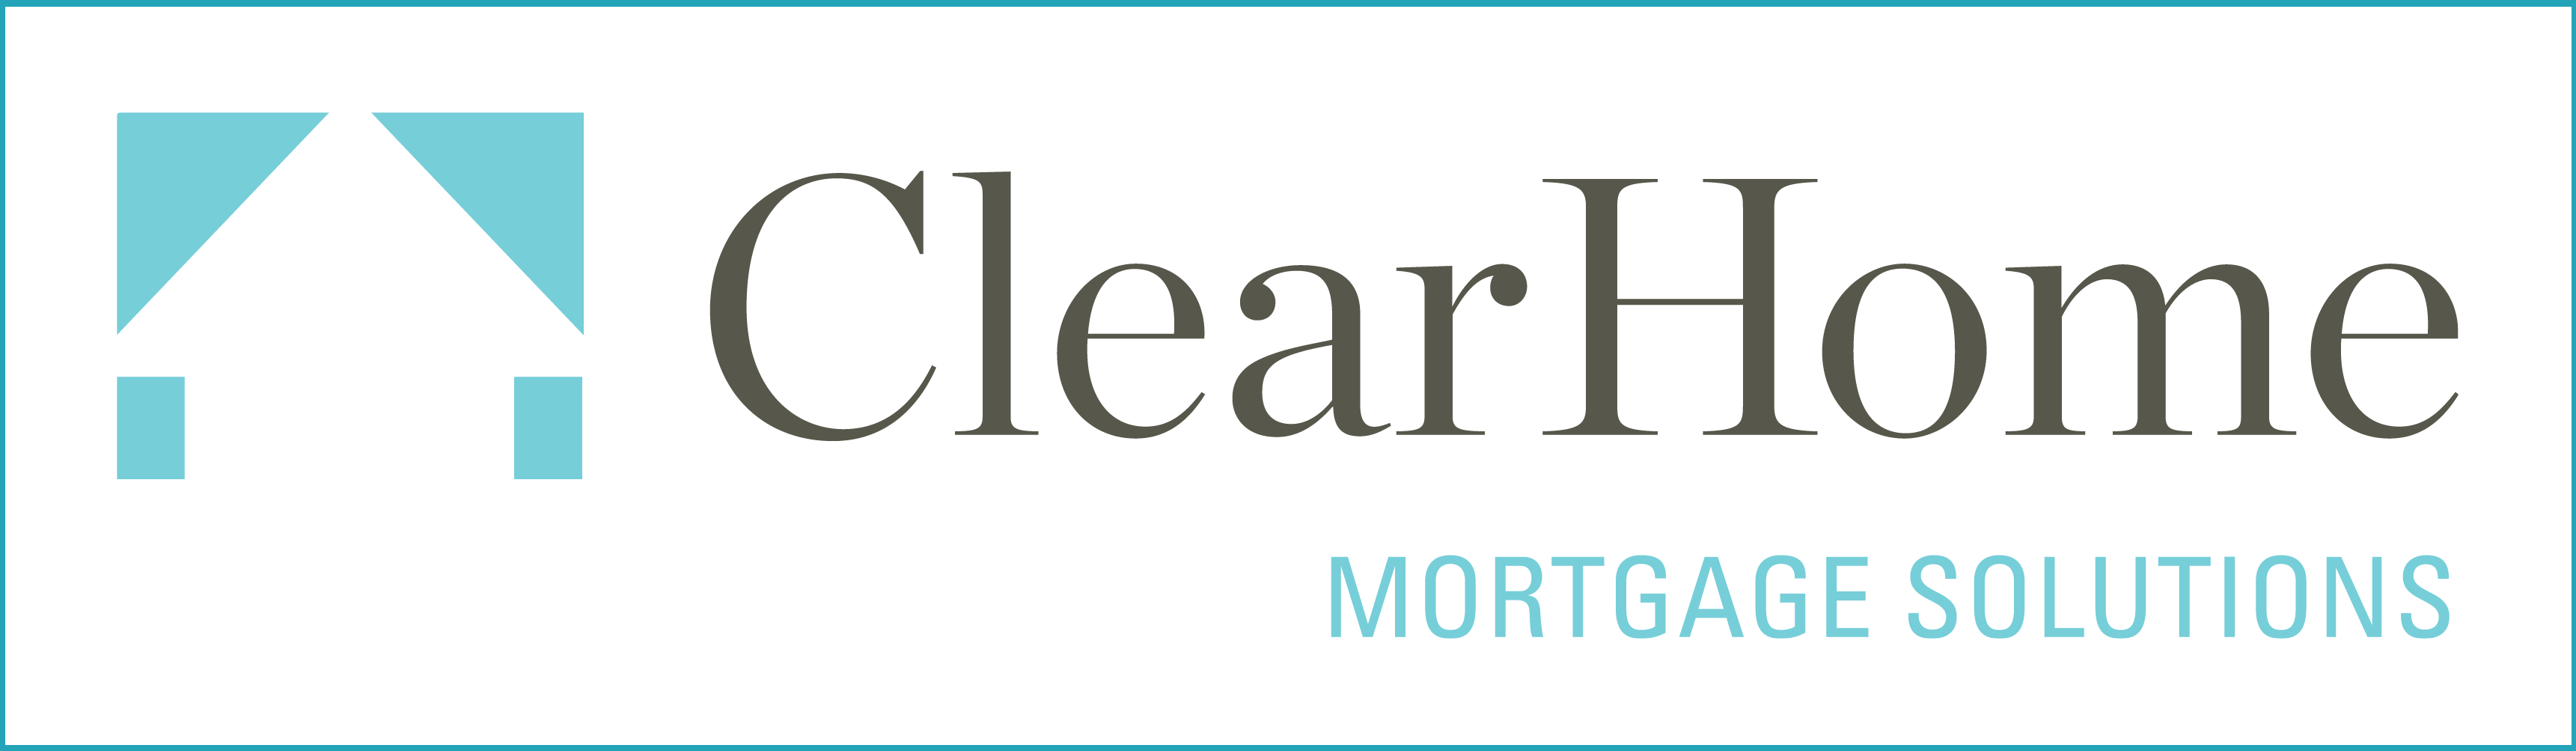 ClearHome Mortgage Solutions  Mortgages